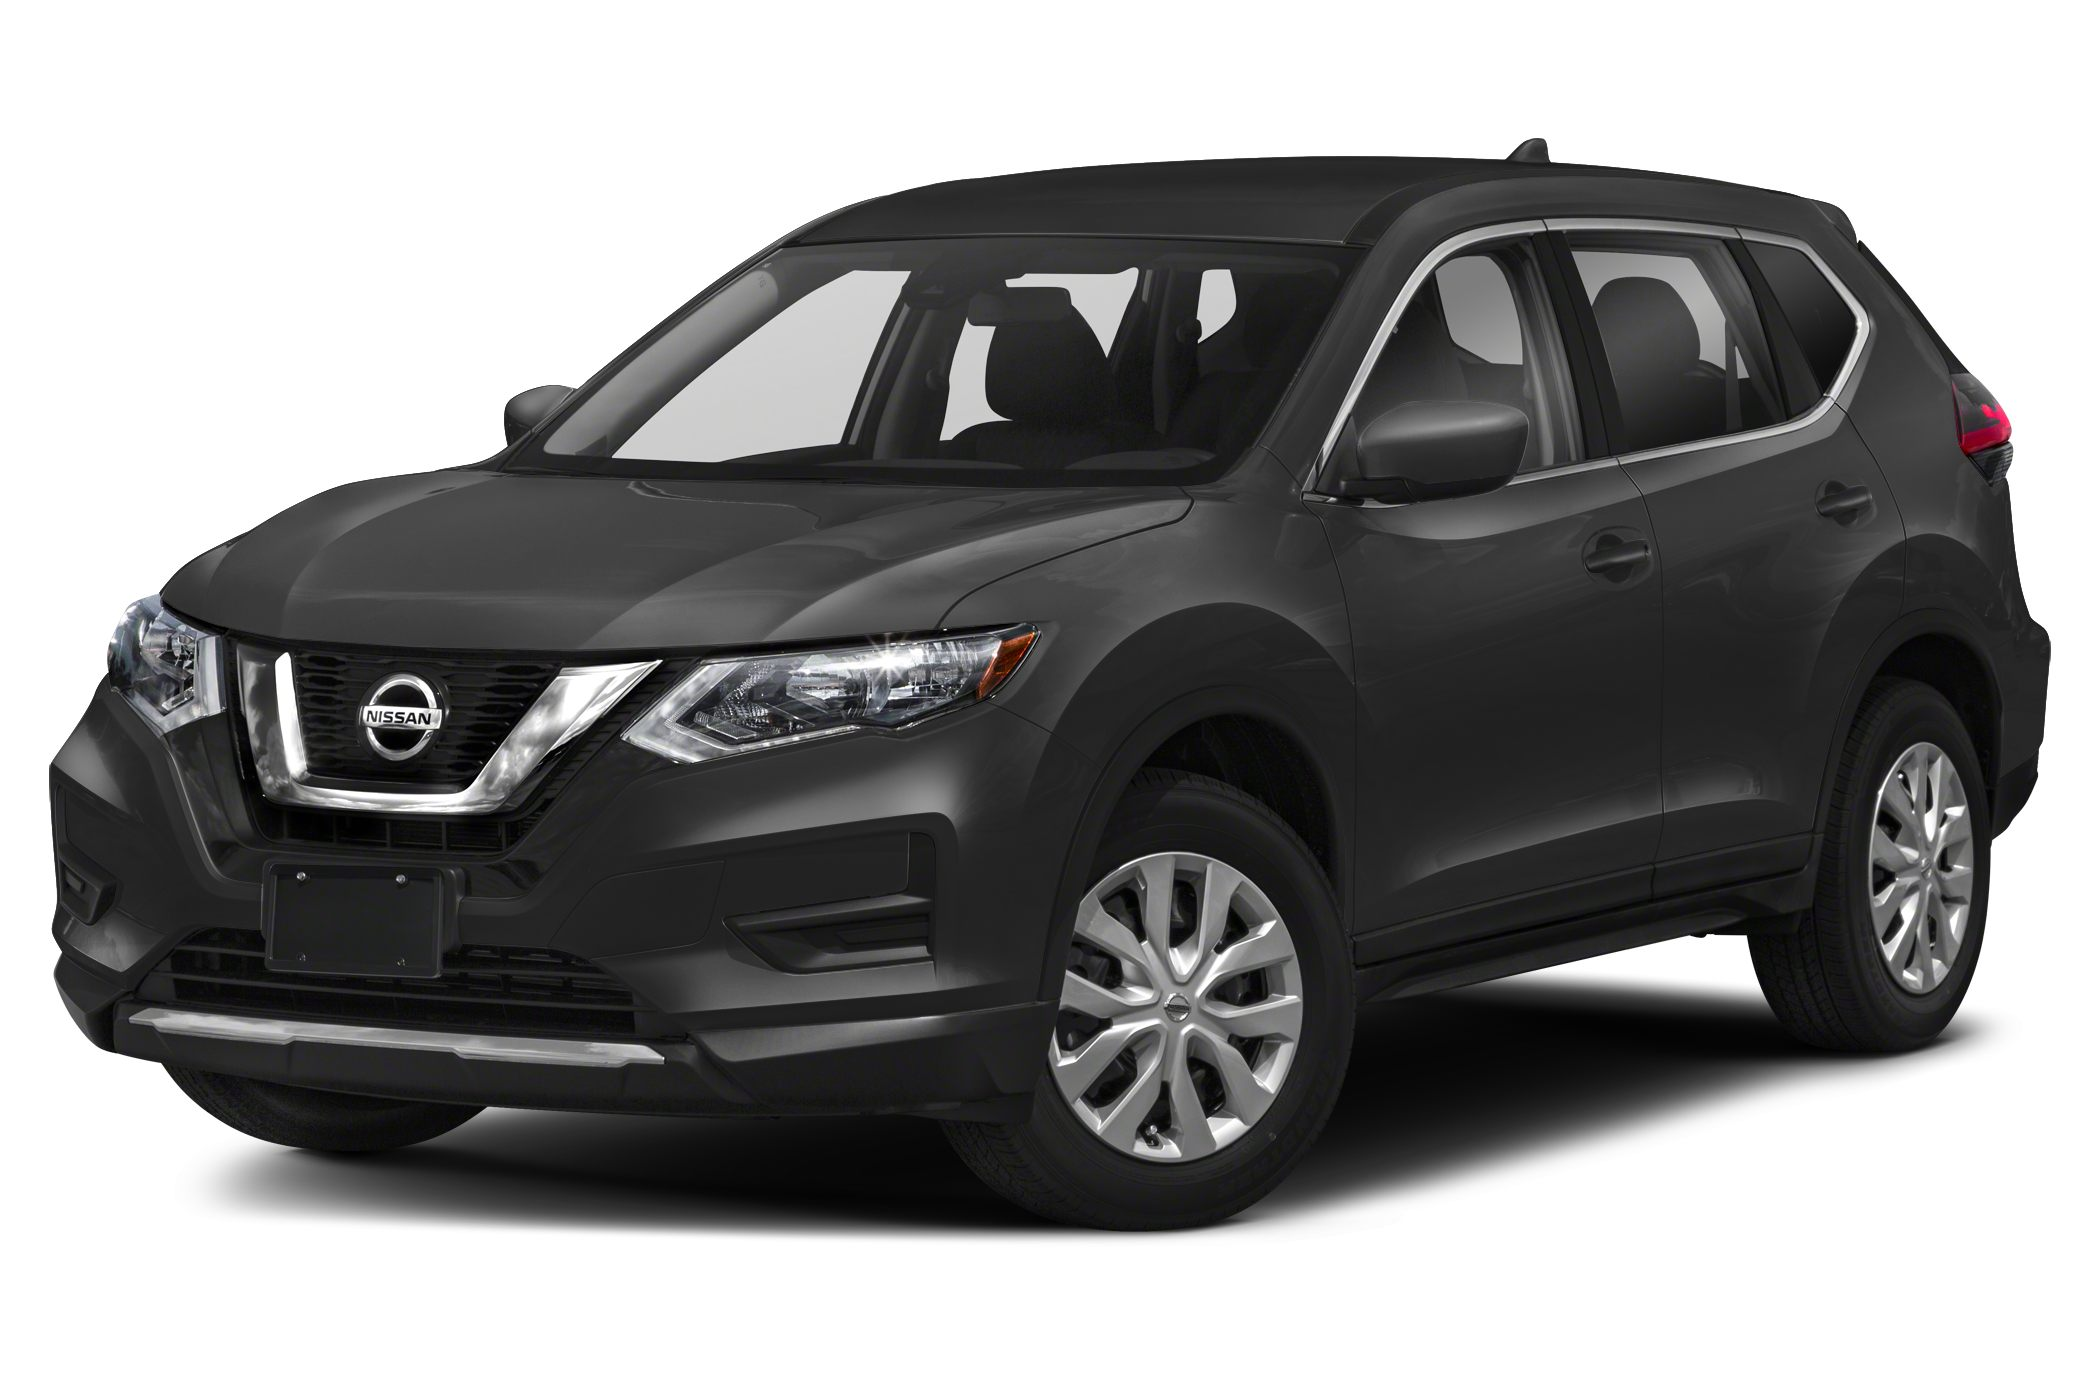 2020 Nissan Rogue Owner Reviews And Ratings